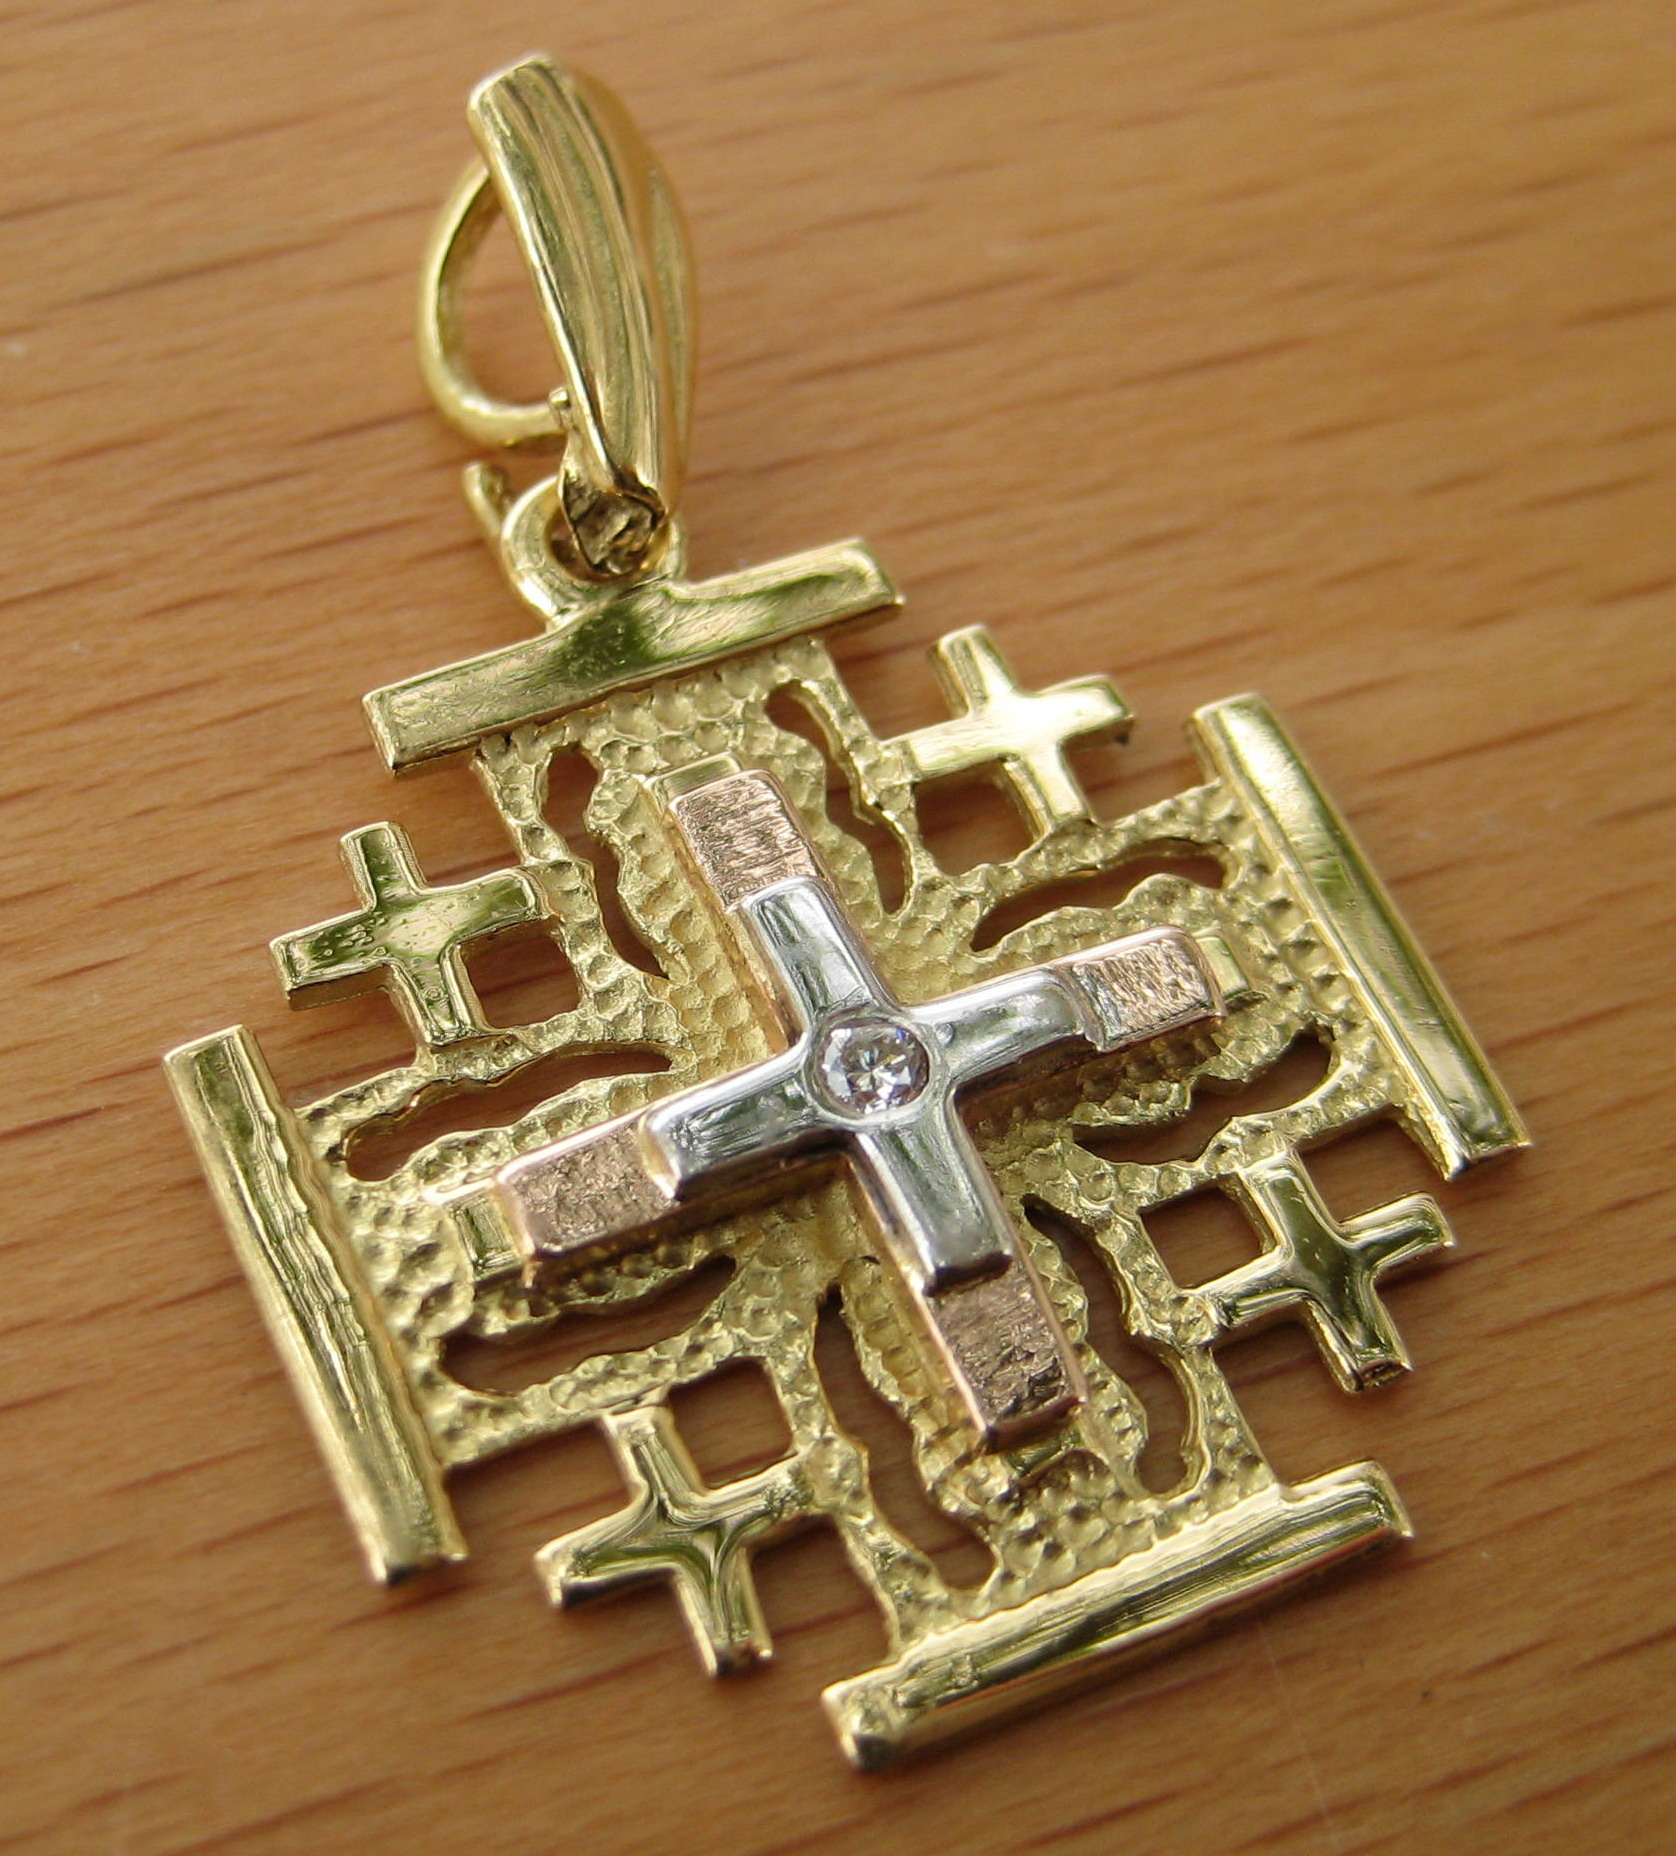 l christianity il cross heavy jerusalem jewelry shipping handmade es fullxfull express middle vintage sterling products eastern silver a pendant